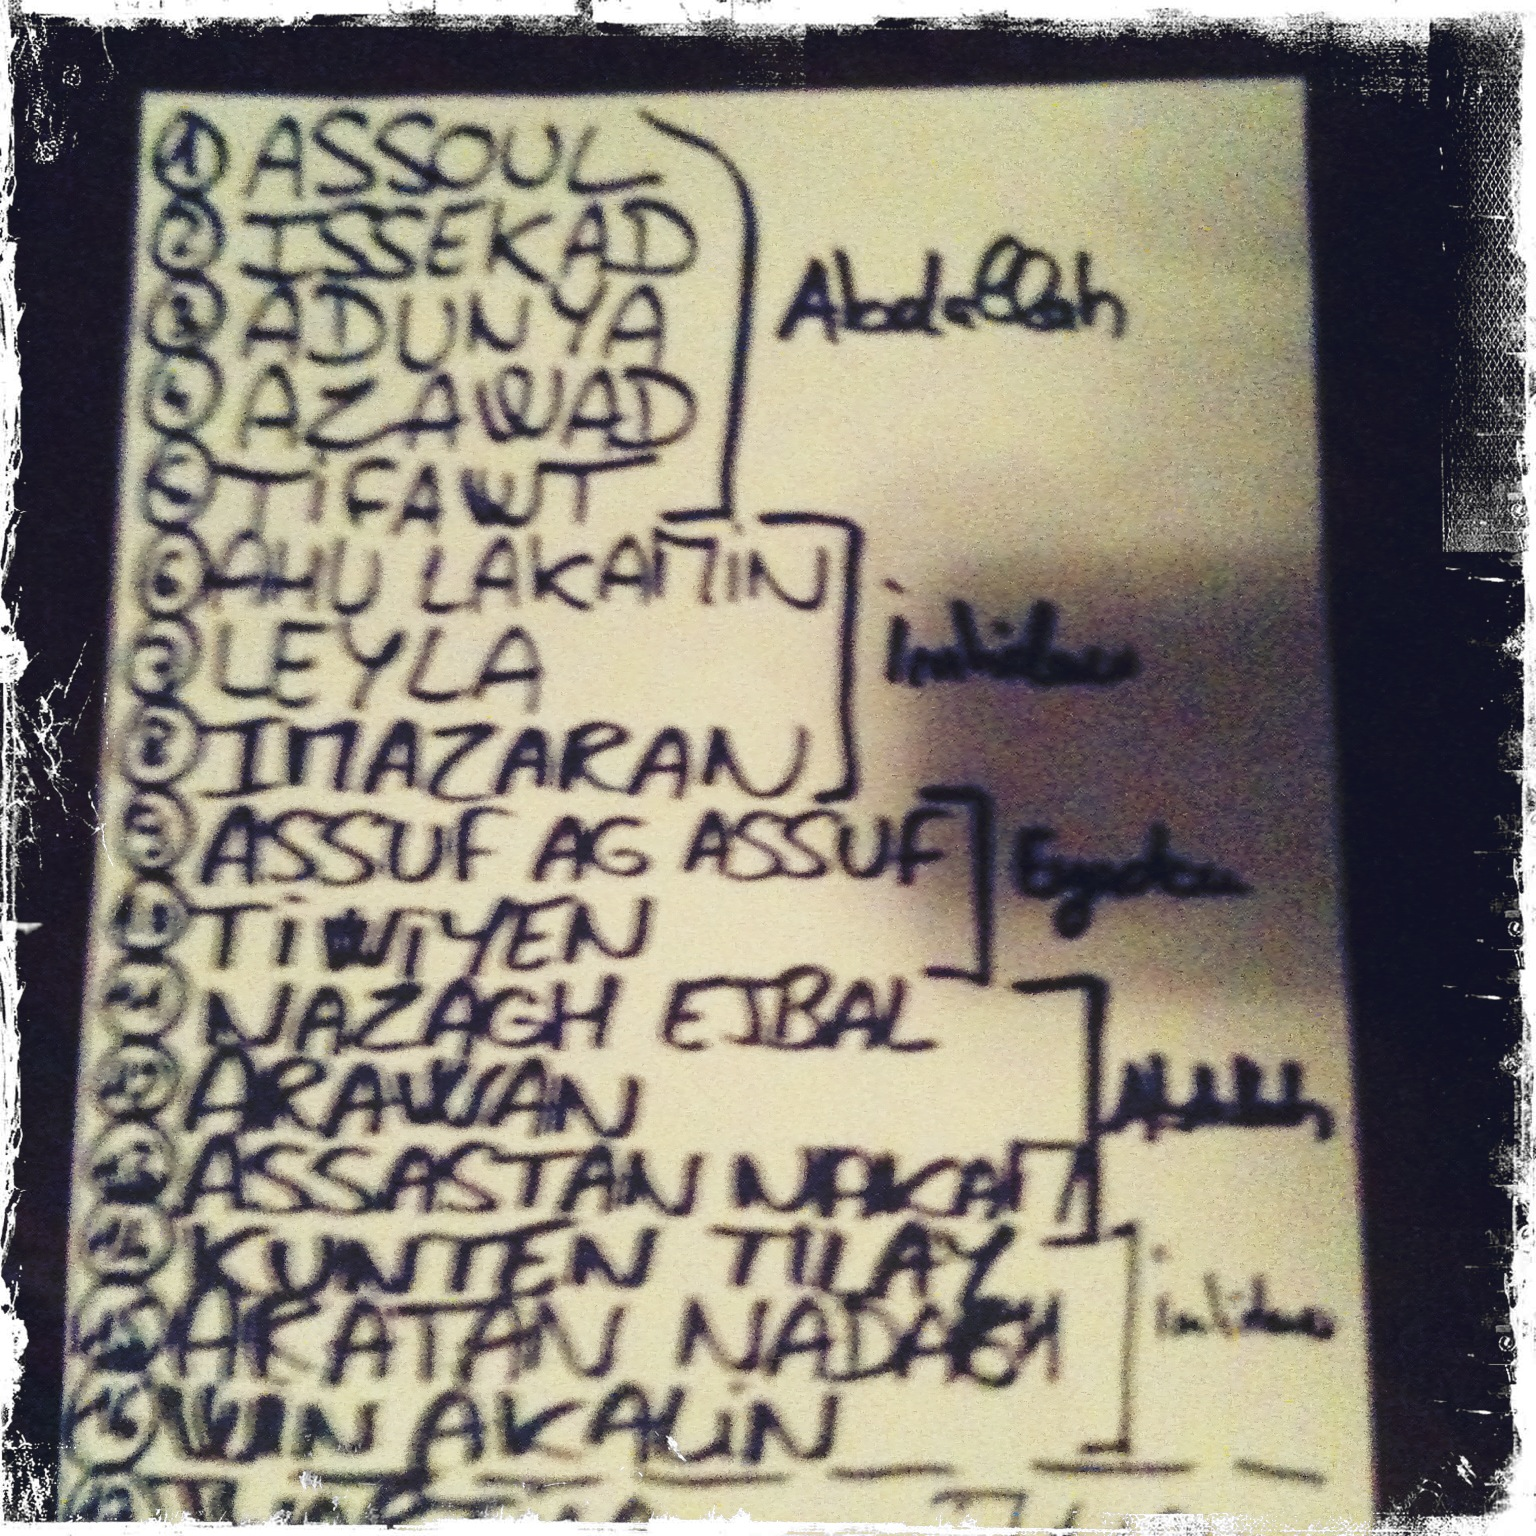 Tinariwen Set List